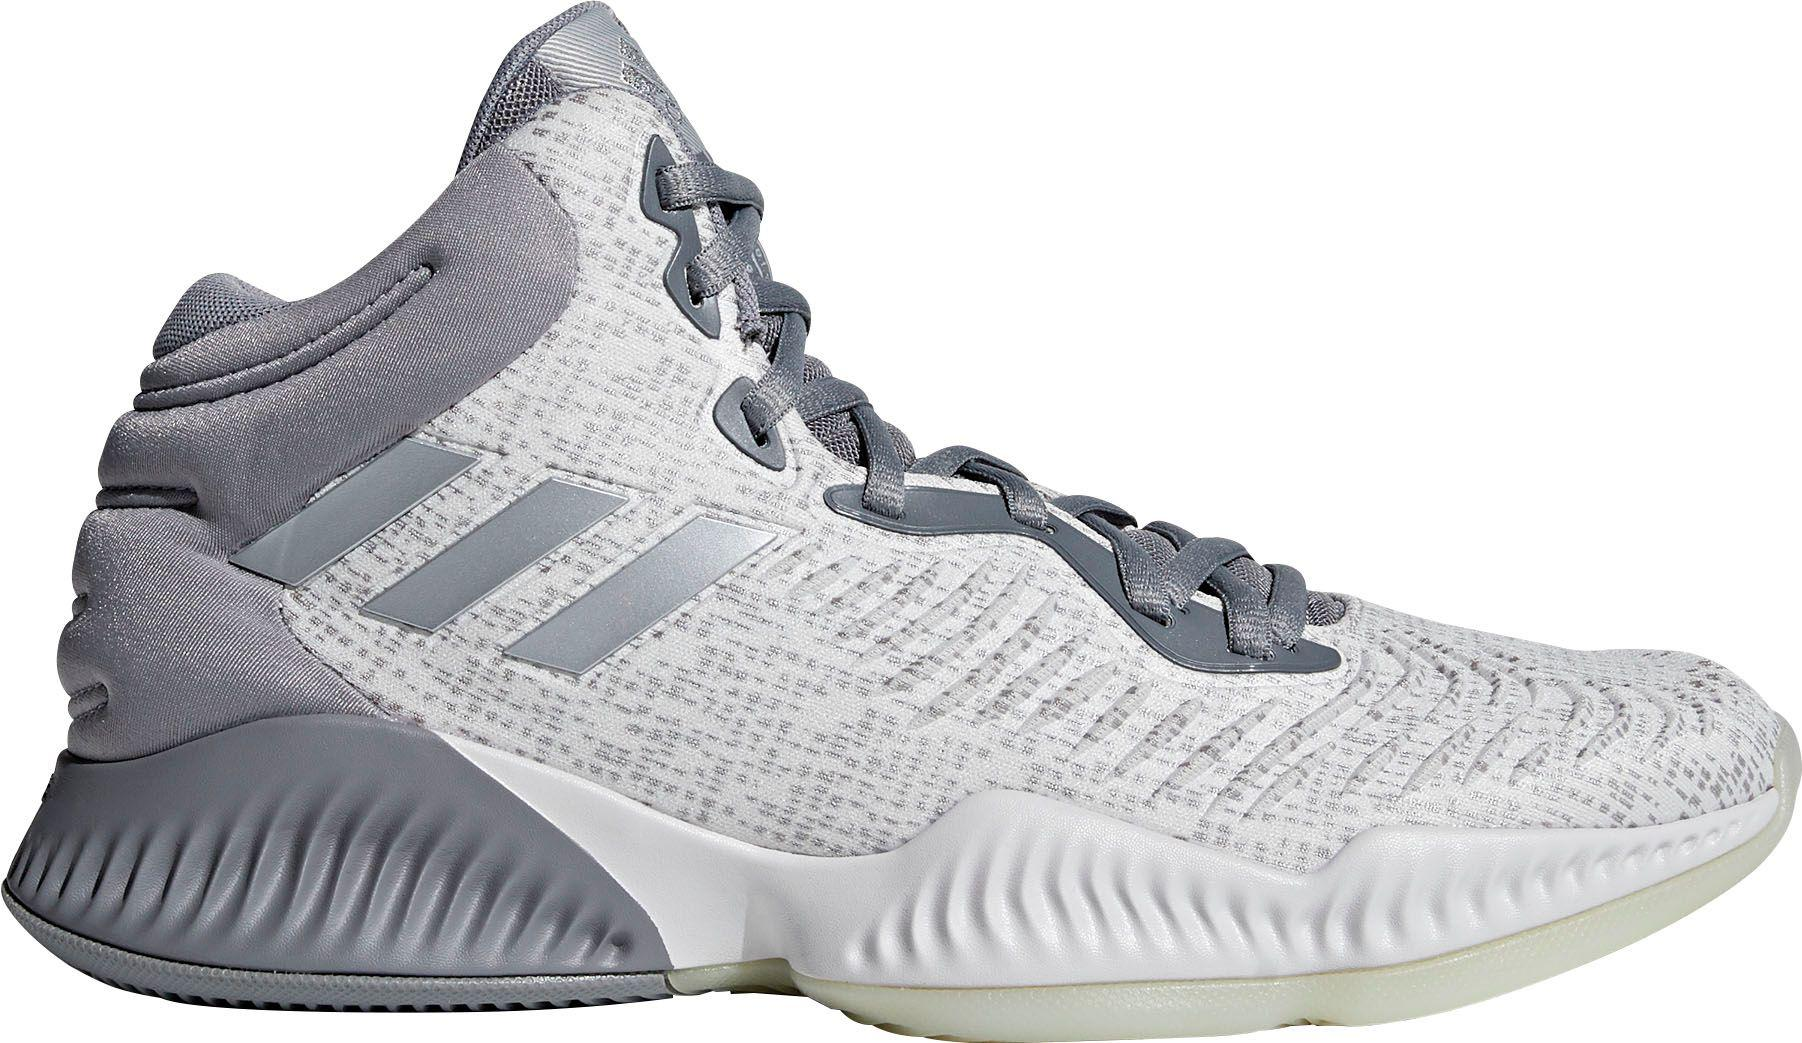 270a54b45ec12 Lyst - adidas Mad Bounce 2018 Basketball Shoes in Gray for Men